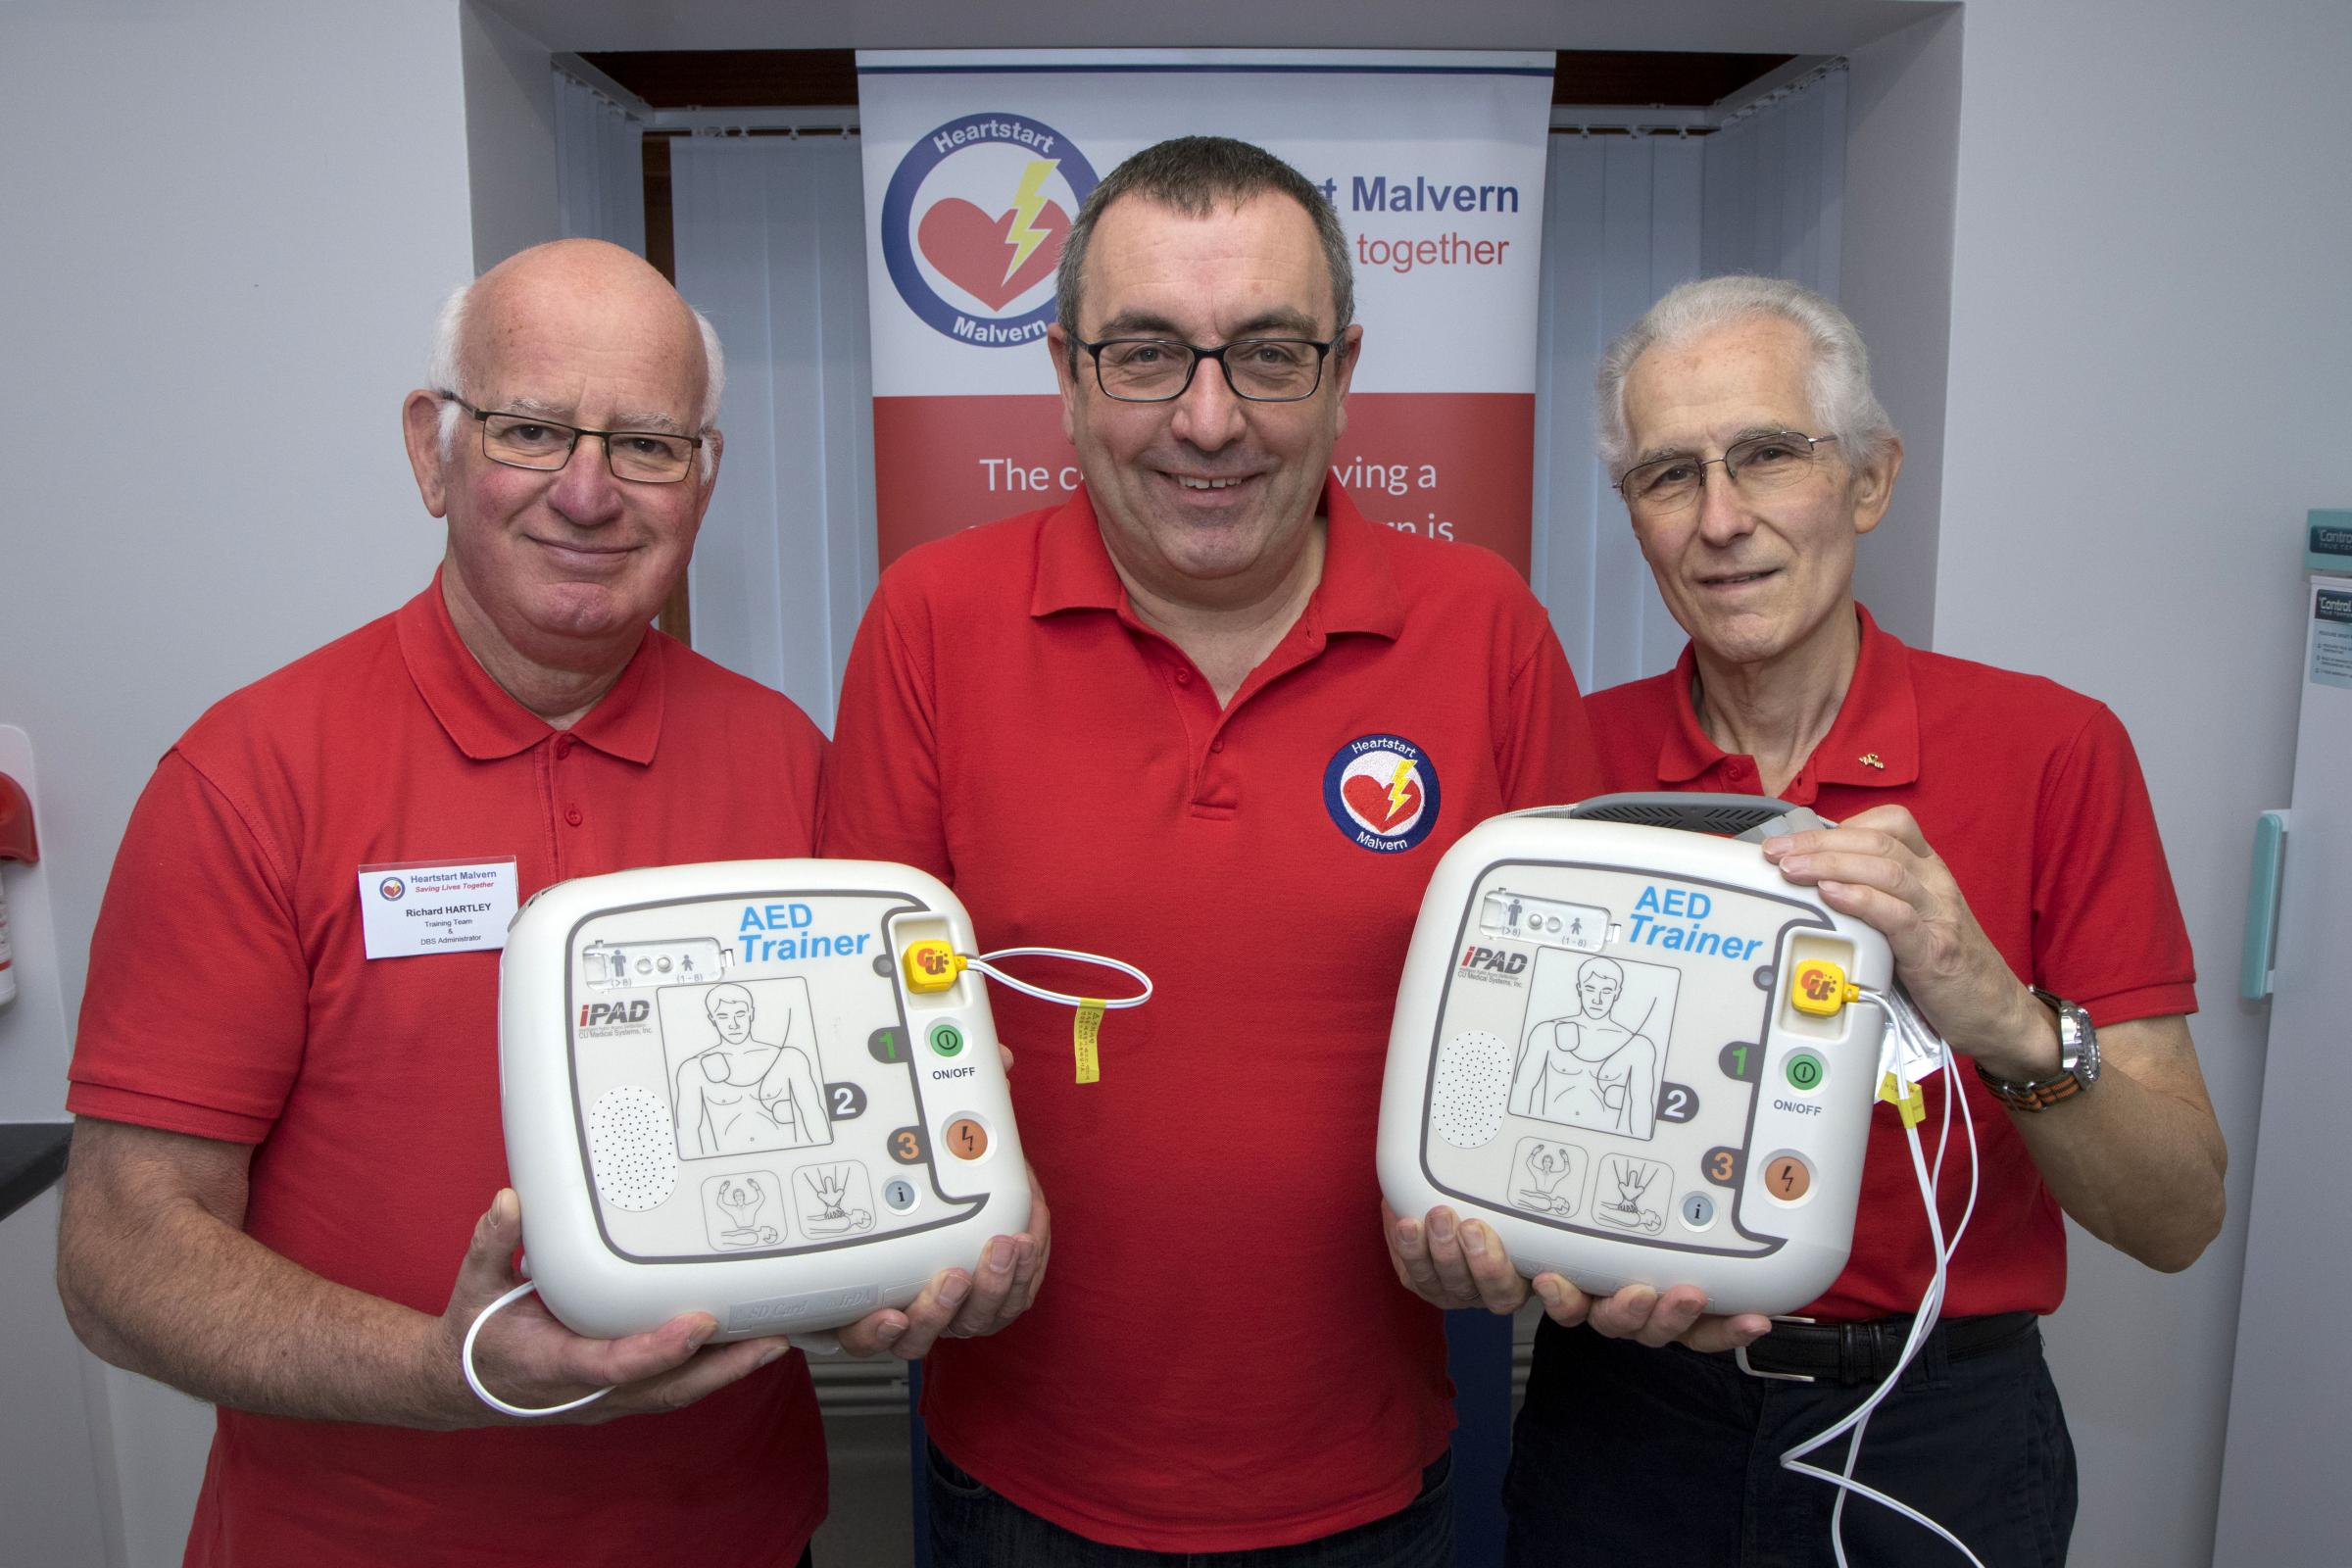 Richard Hartley, Richard Vakis-Lowe and Tony Palmer from Heartstart Malvern.